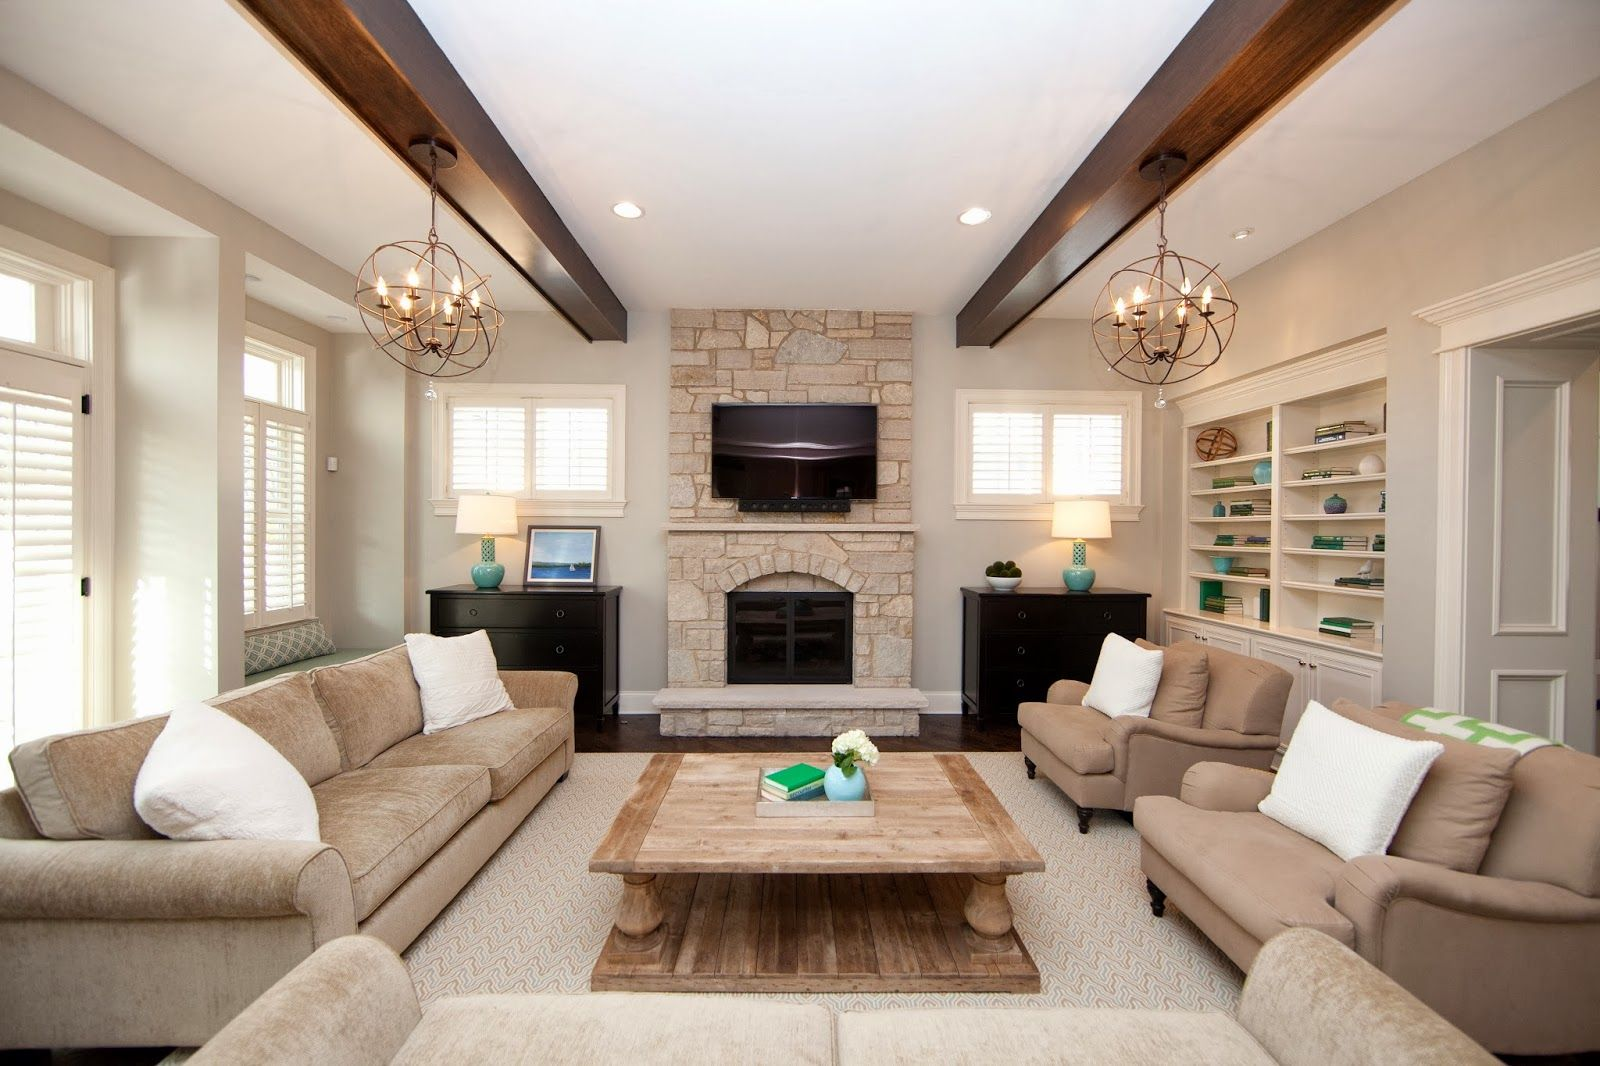 Long Living Room Layout  Google Search  Decor Ideas  Pinterest Gorgeous How To Layout A Living Room Design Ideas